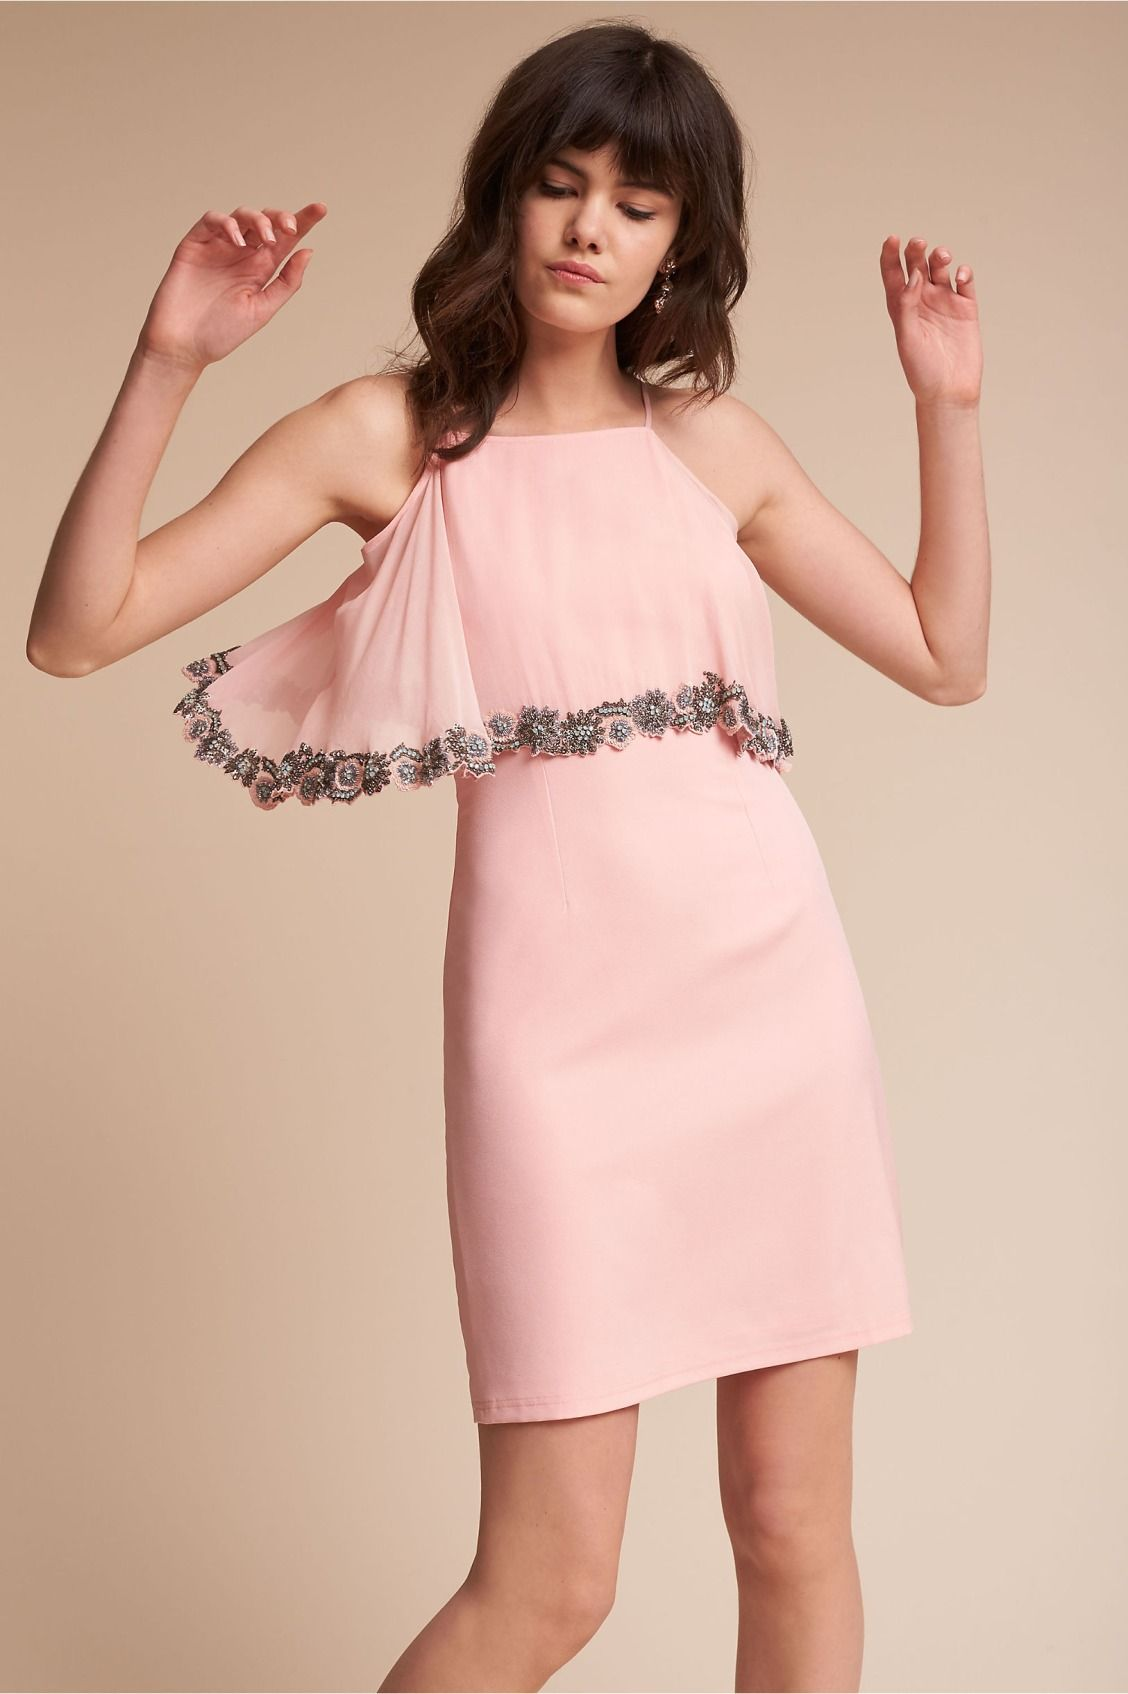 flirty pink | Sun Seeker Dress from BHLDN | Summer Garden Wedding ...